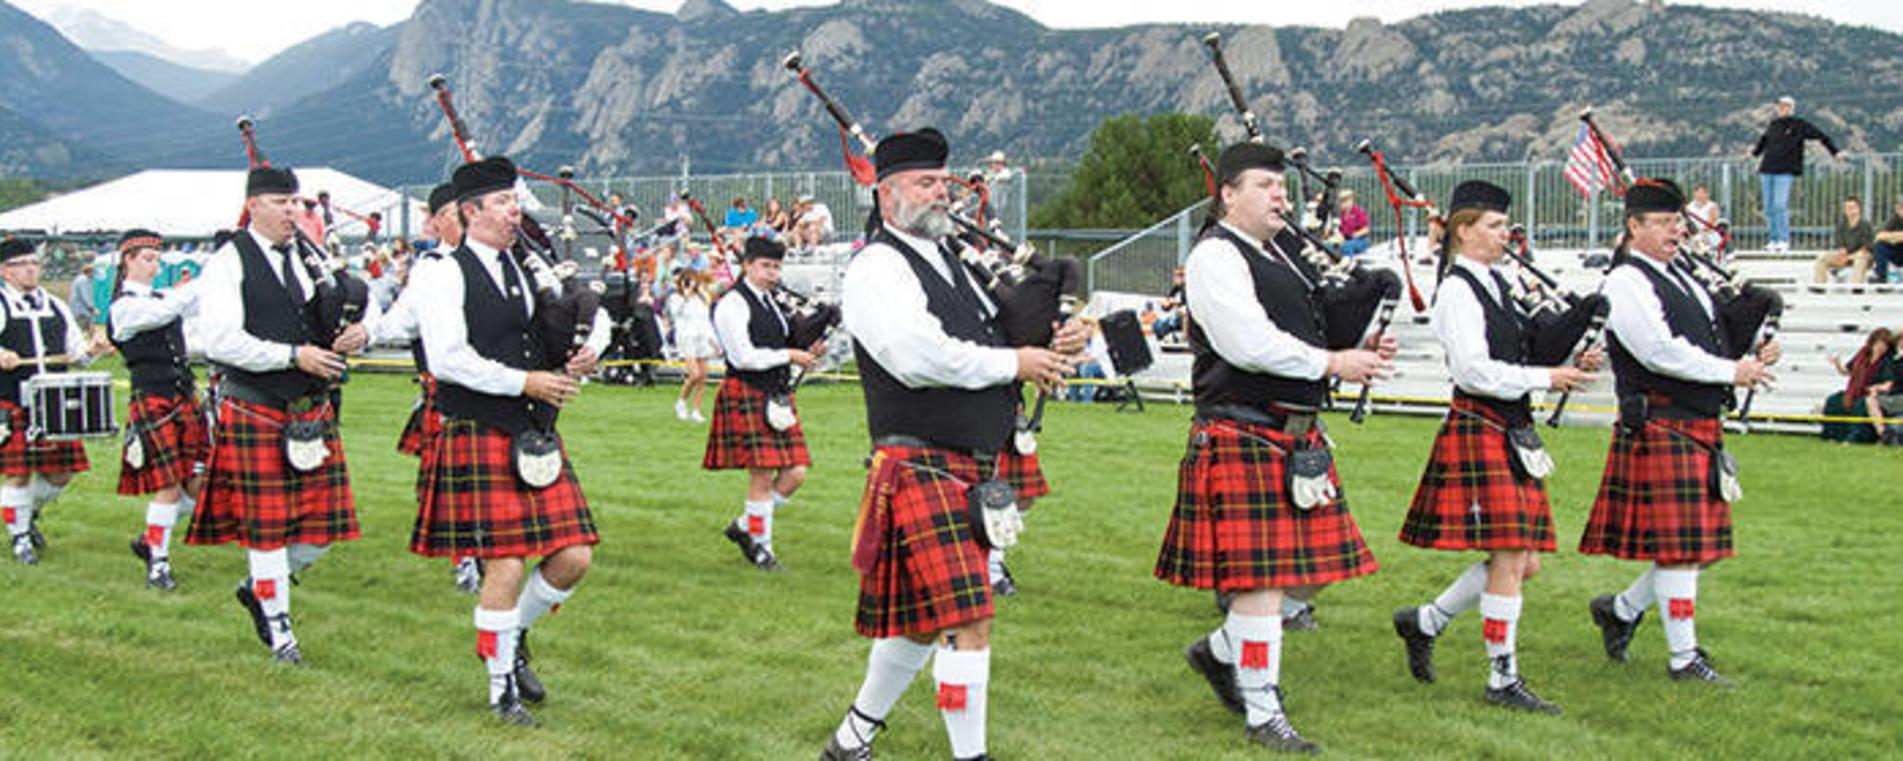 Scottish Festival 2020.Estes Park Co Lodging Things To Do Restaurants Estes